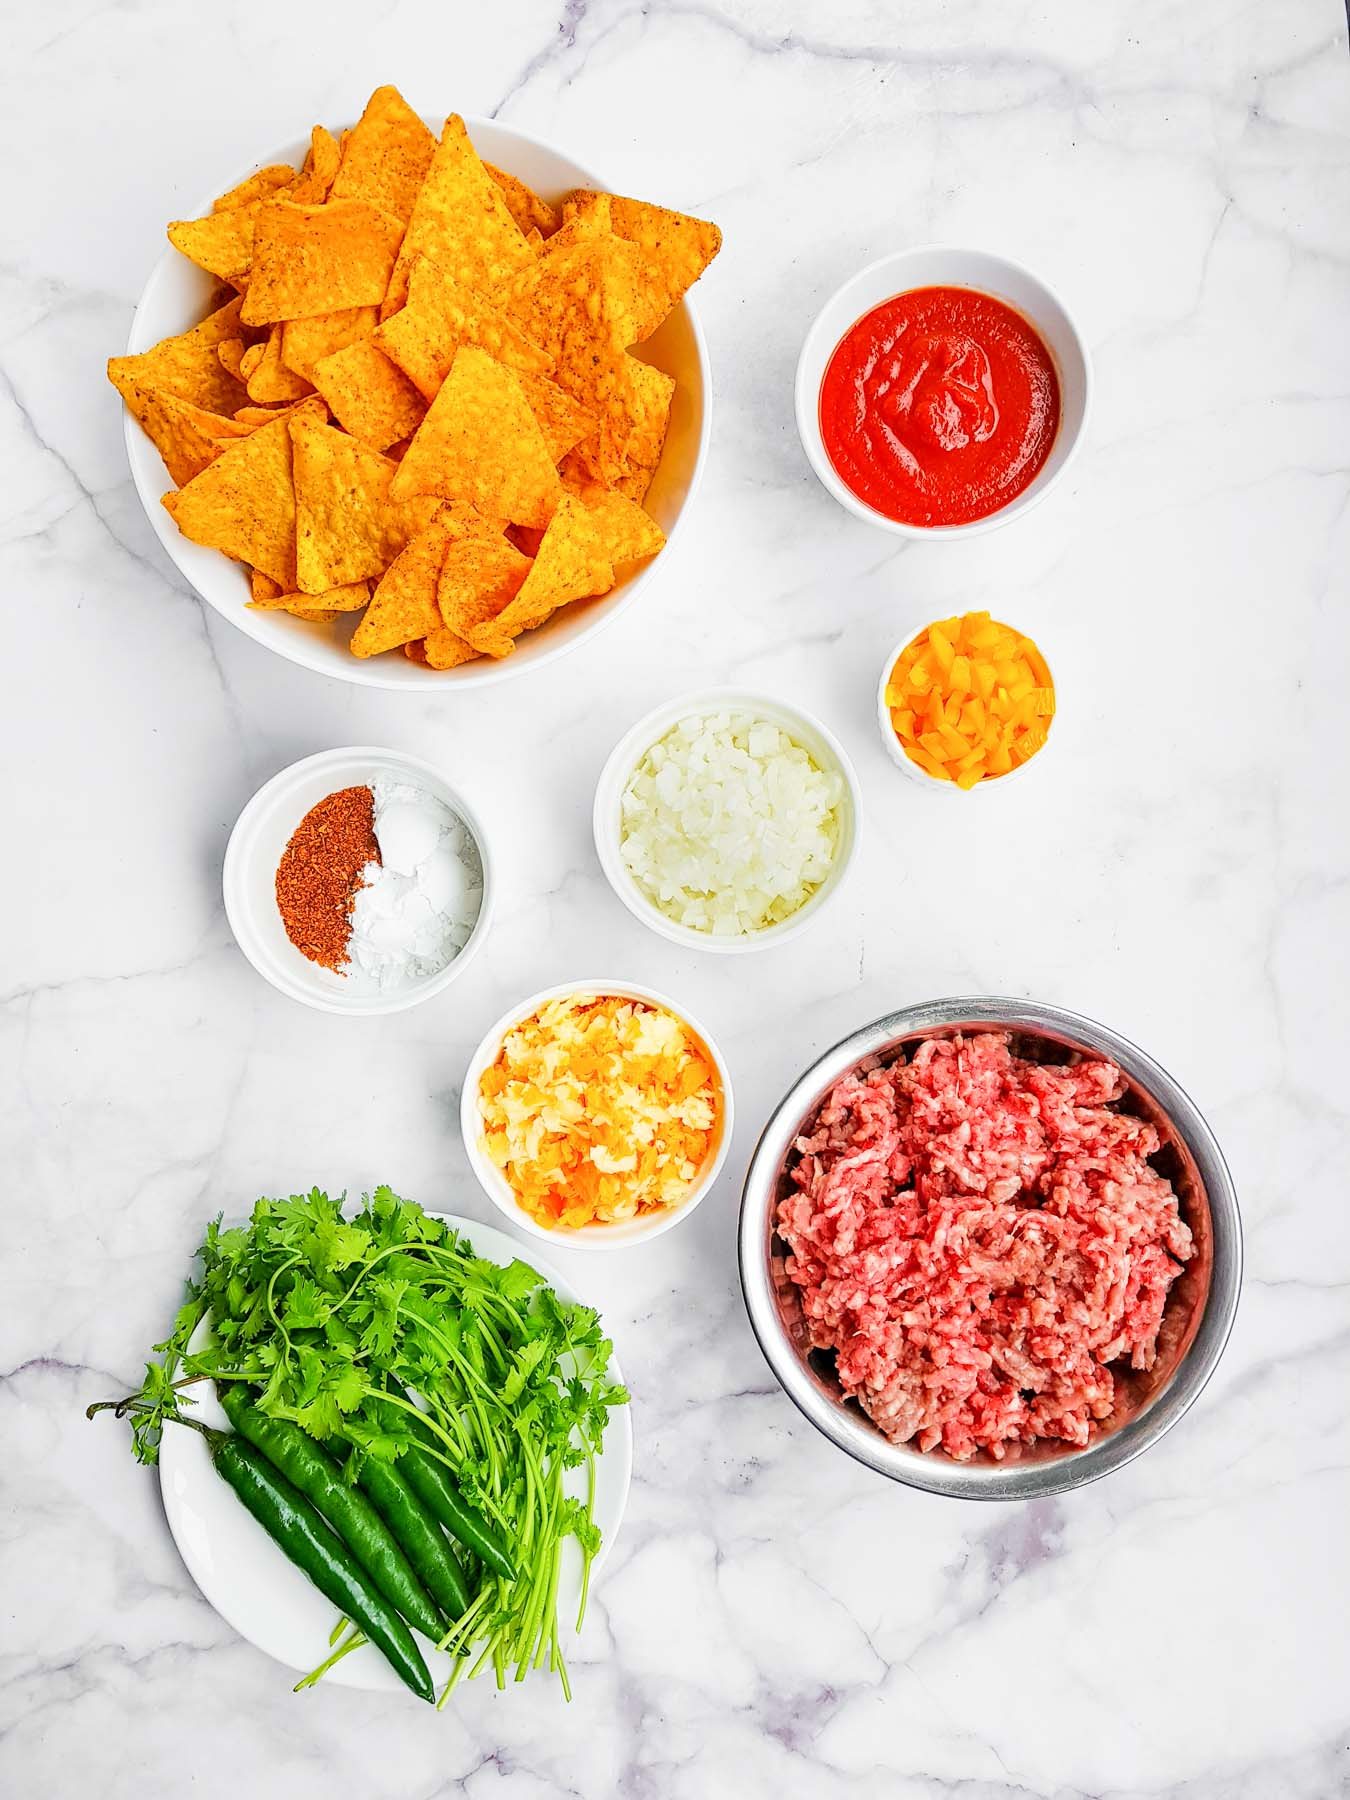 ingredients for beef nachos with doritos